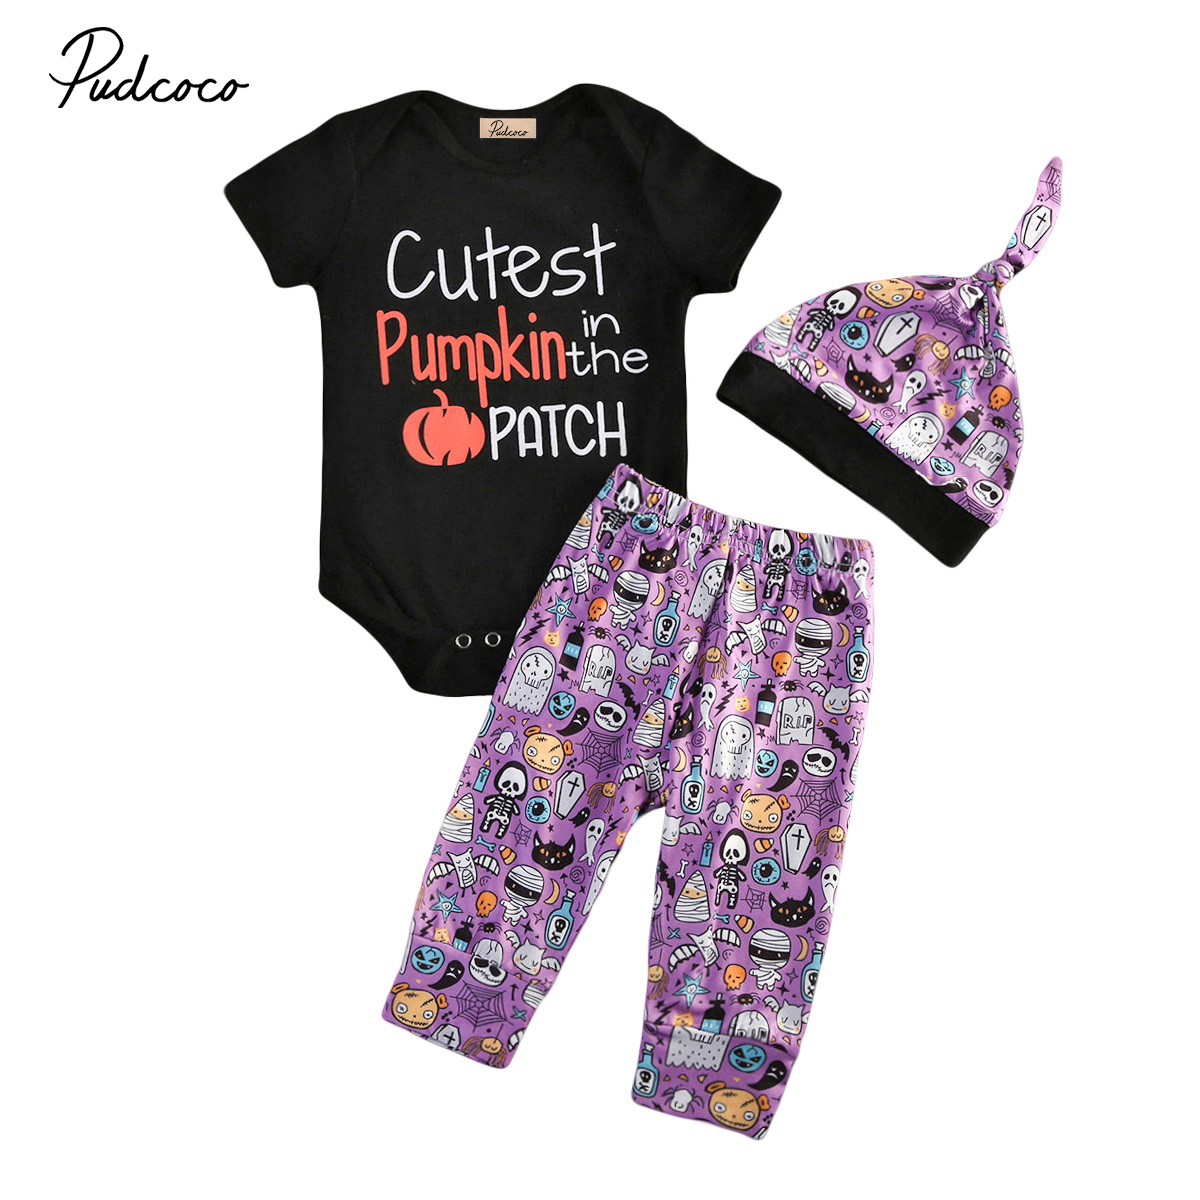 3PCs Halloween Newborn Baby Clothes 2017 NEW Toddler Boys Top Romper Pants Hat 3Pcs Halloween Costumes Outfits Set Party Clothes